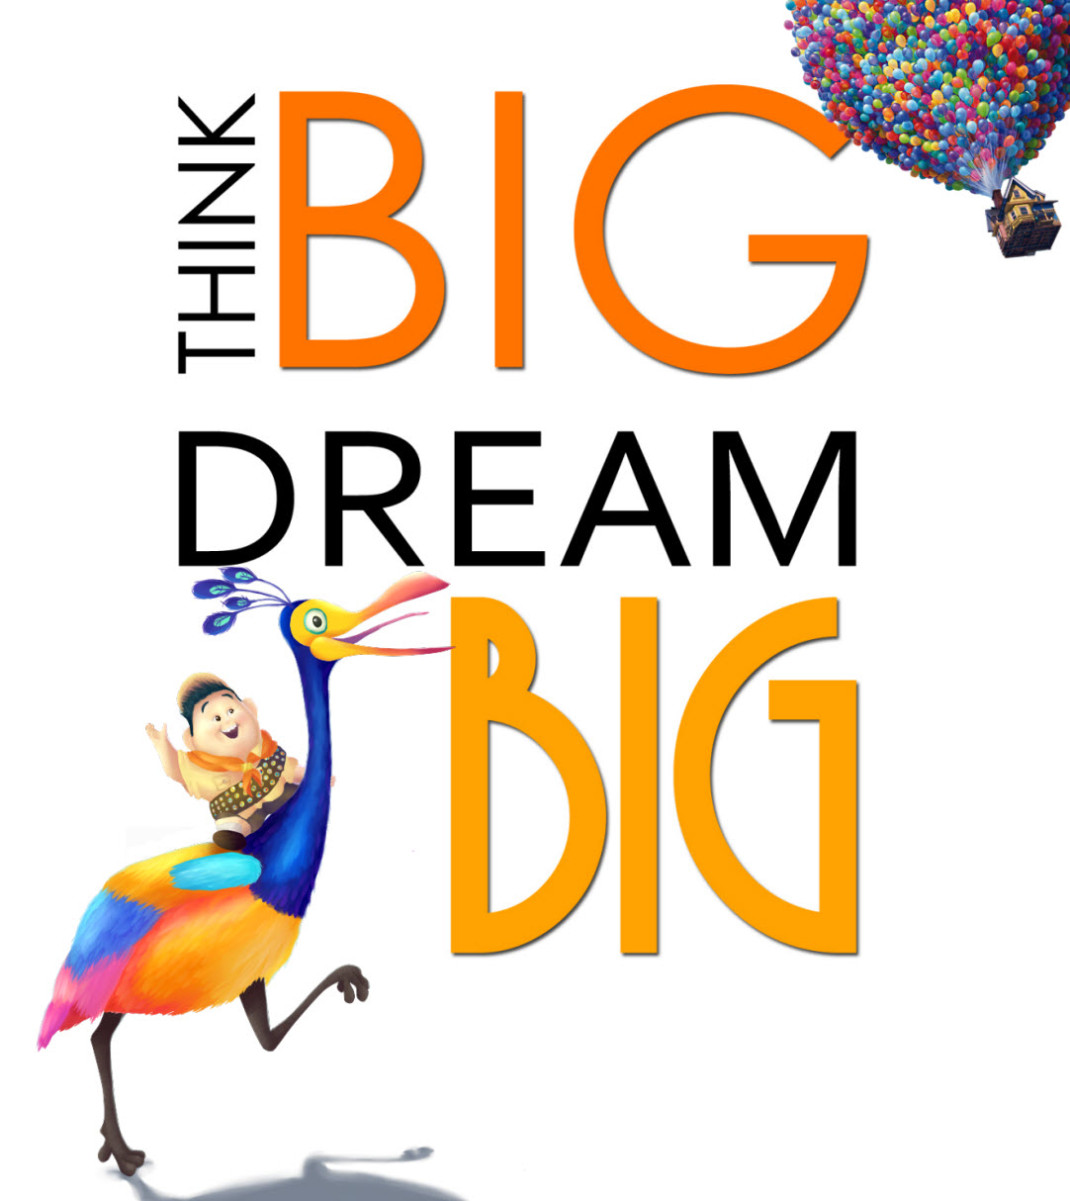 Dream clipart i think Dream Often  Big! Dream